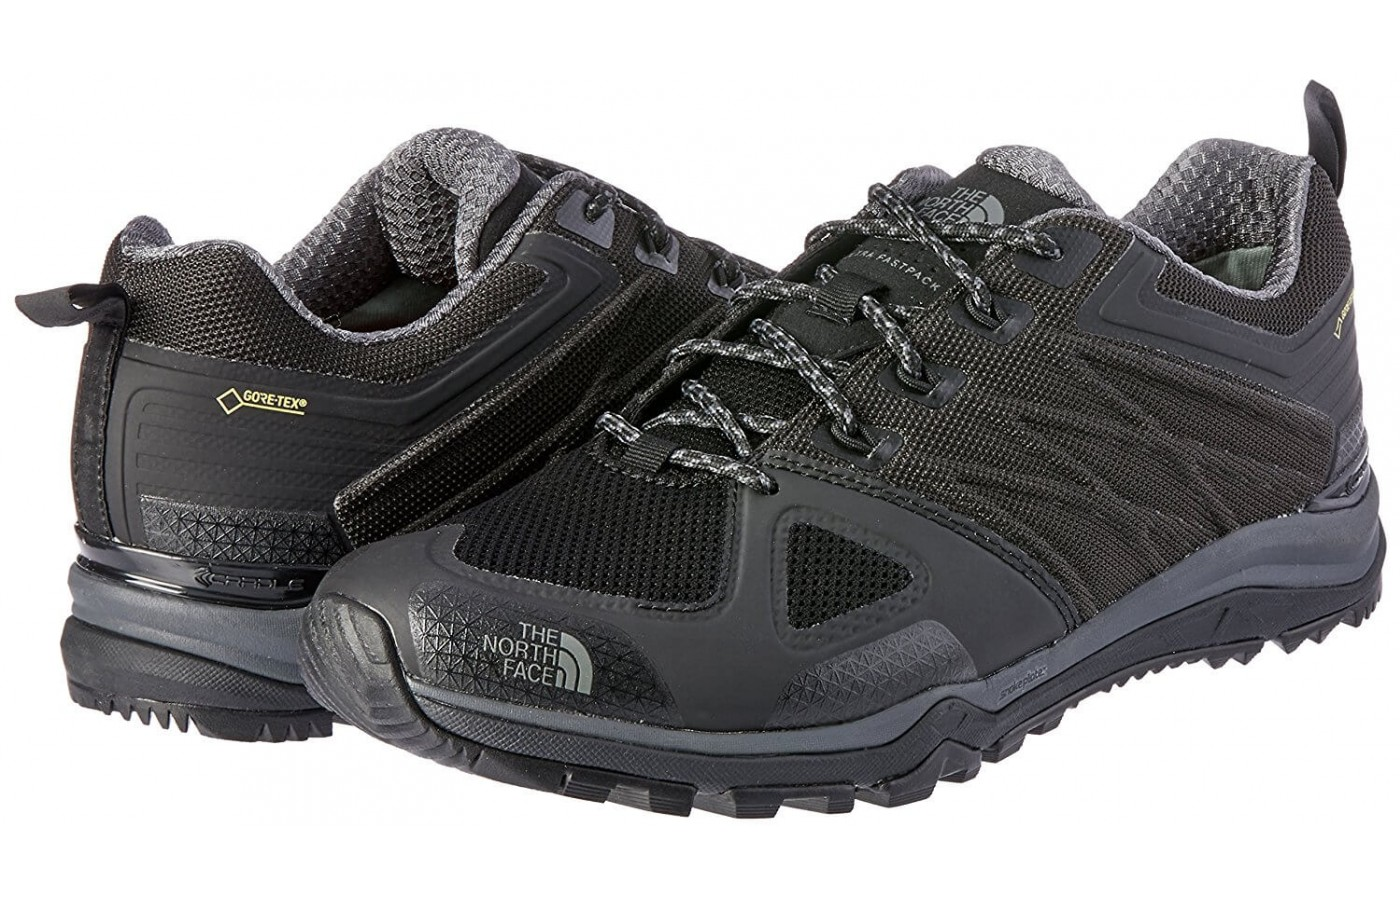 ede32f8c21d The North Face Ultra Fastpack II GTX